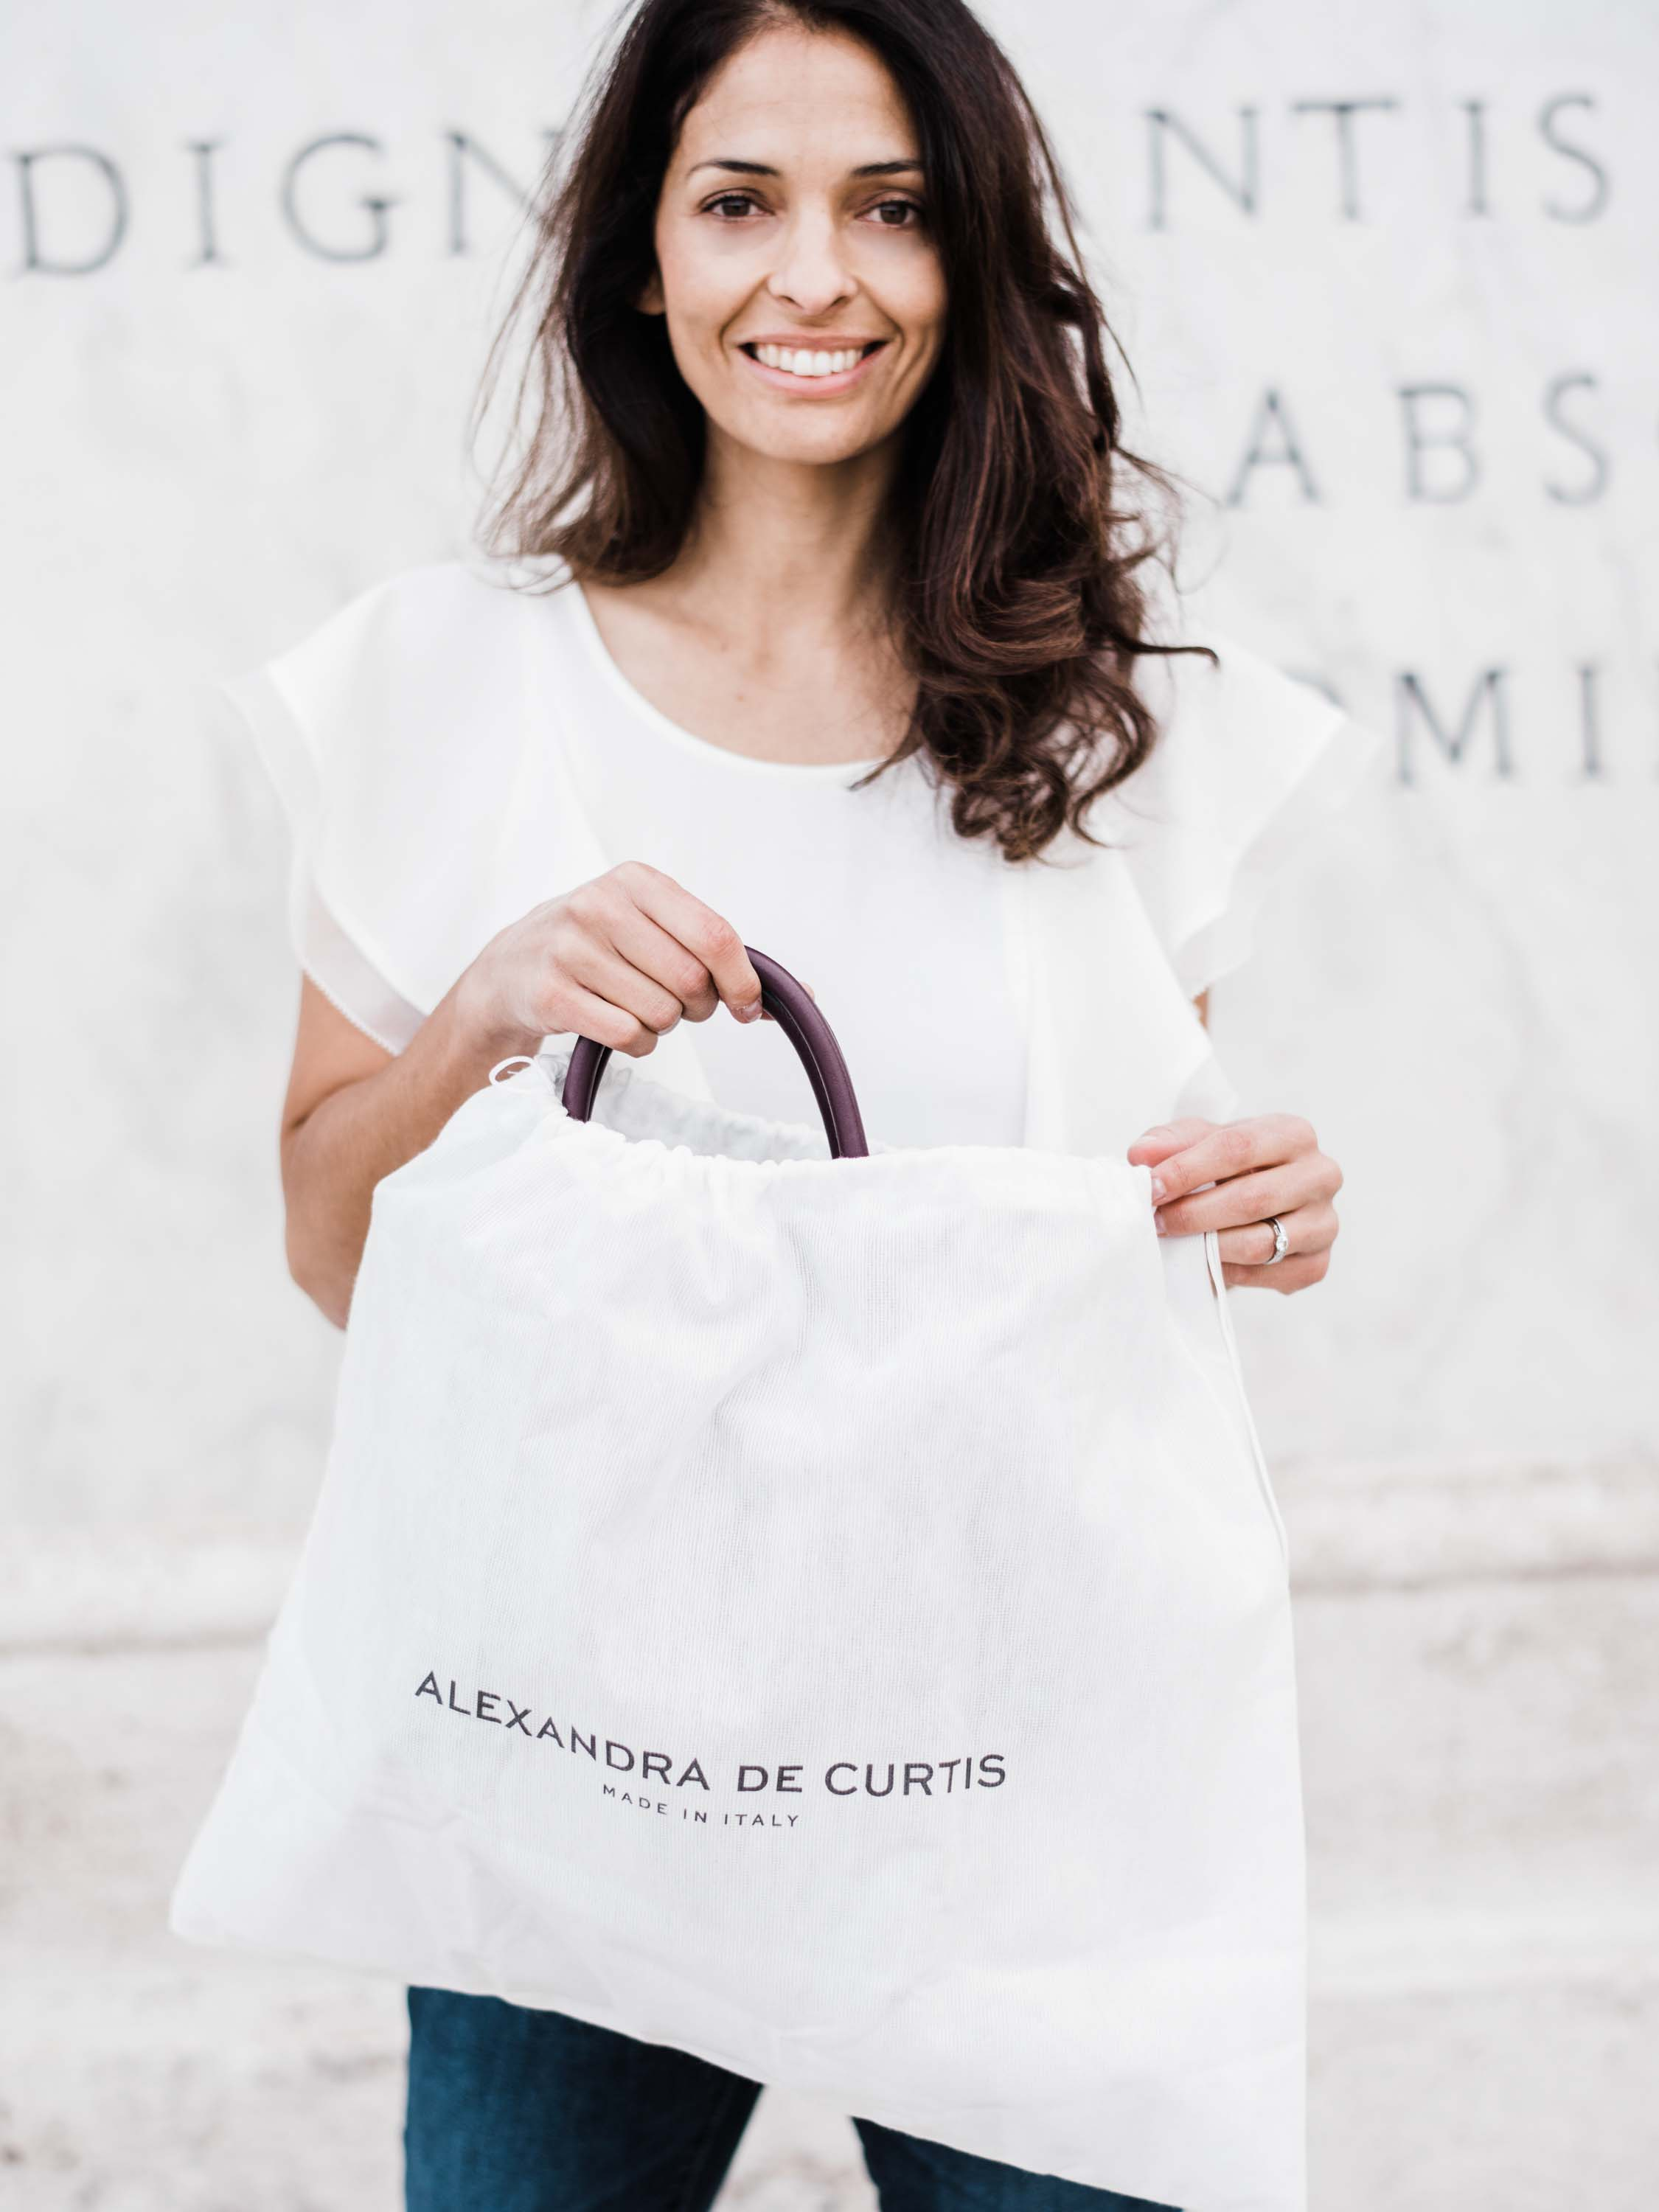 Alexandra de Curtis Meet the Designer Handbags